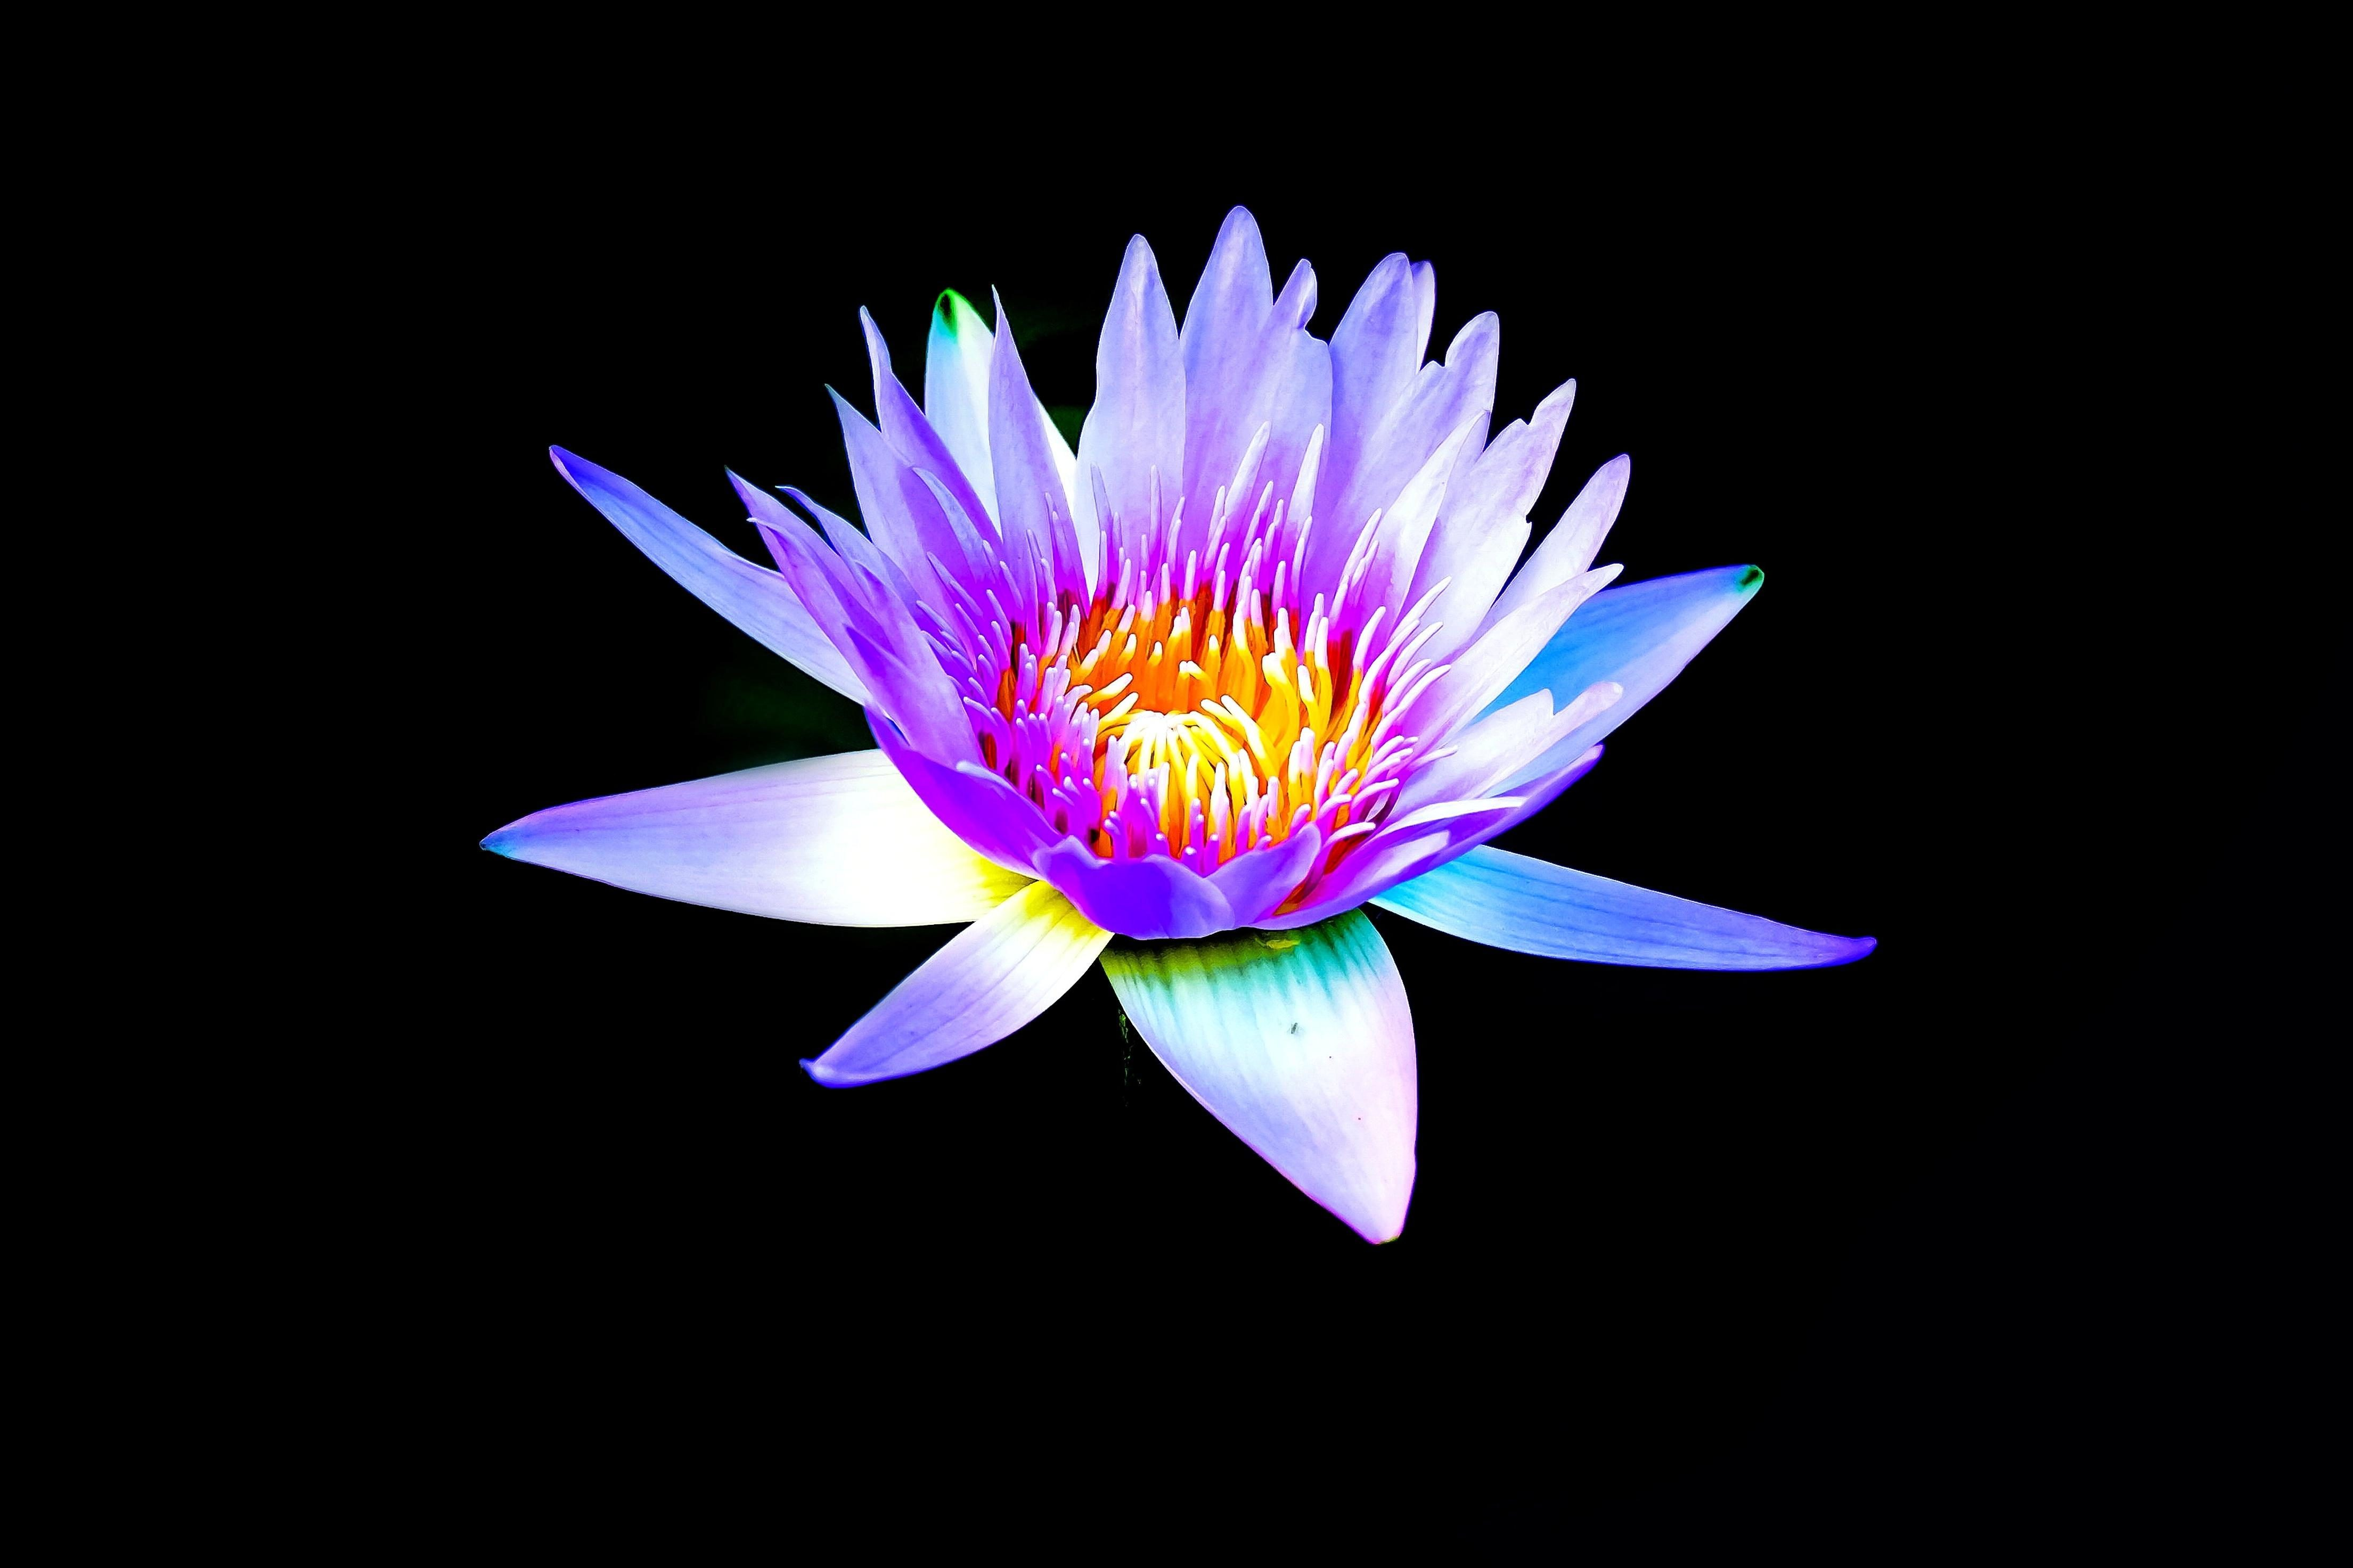 Free picture water lily lotus flower plant decoration leaf water lily lotus flower plant decoration leaf color flora darkness mightylinksfo